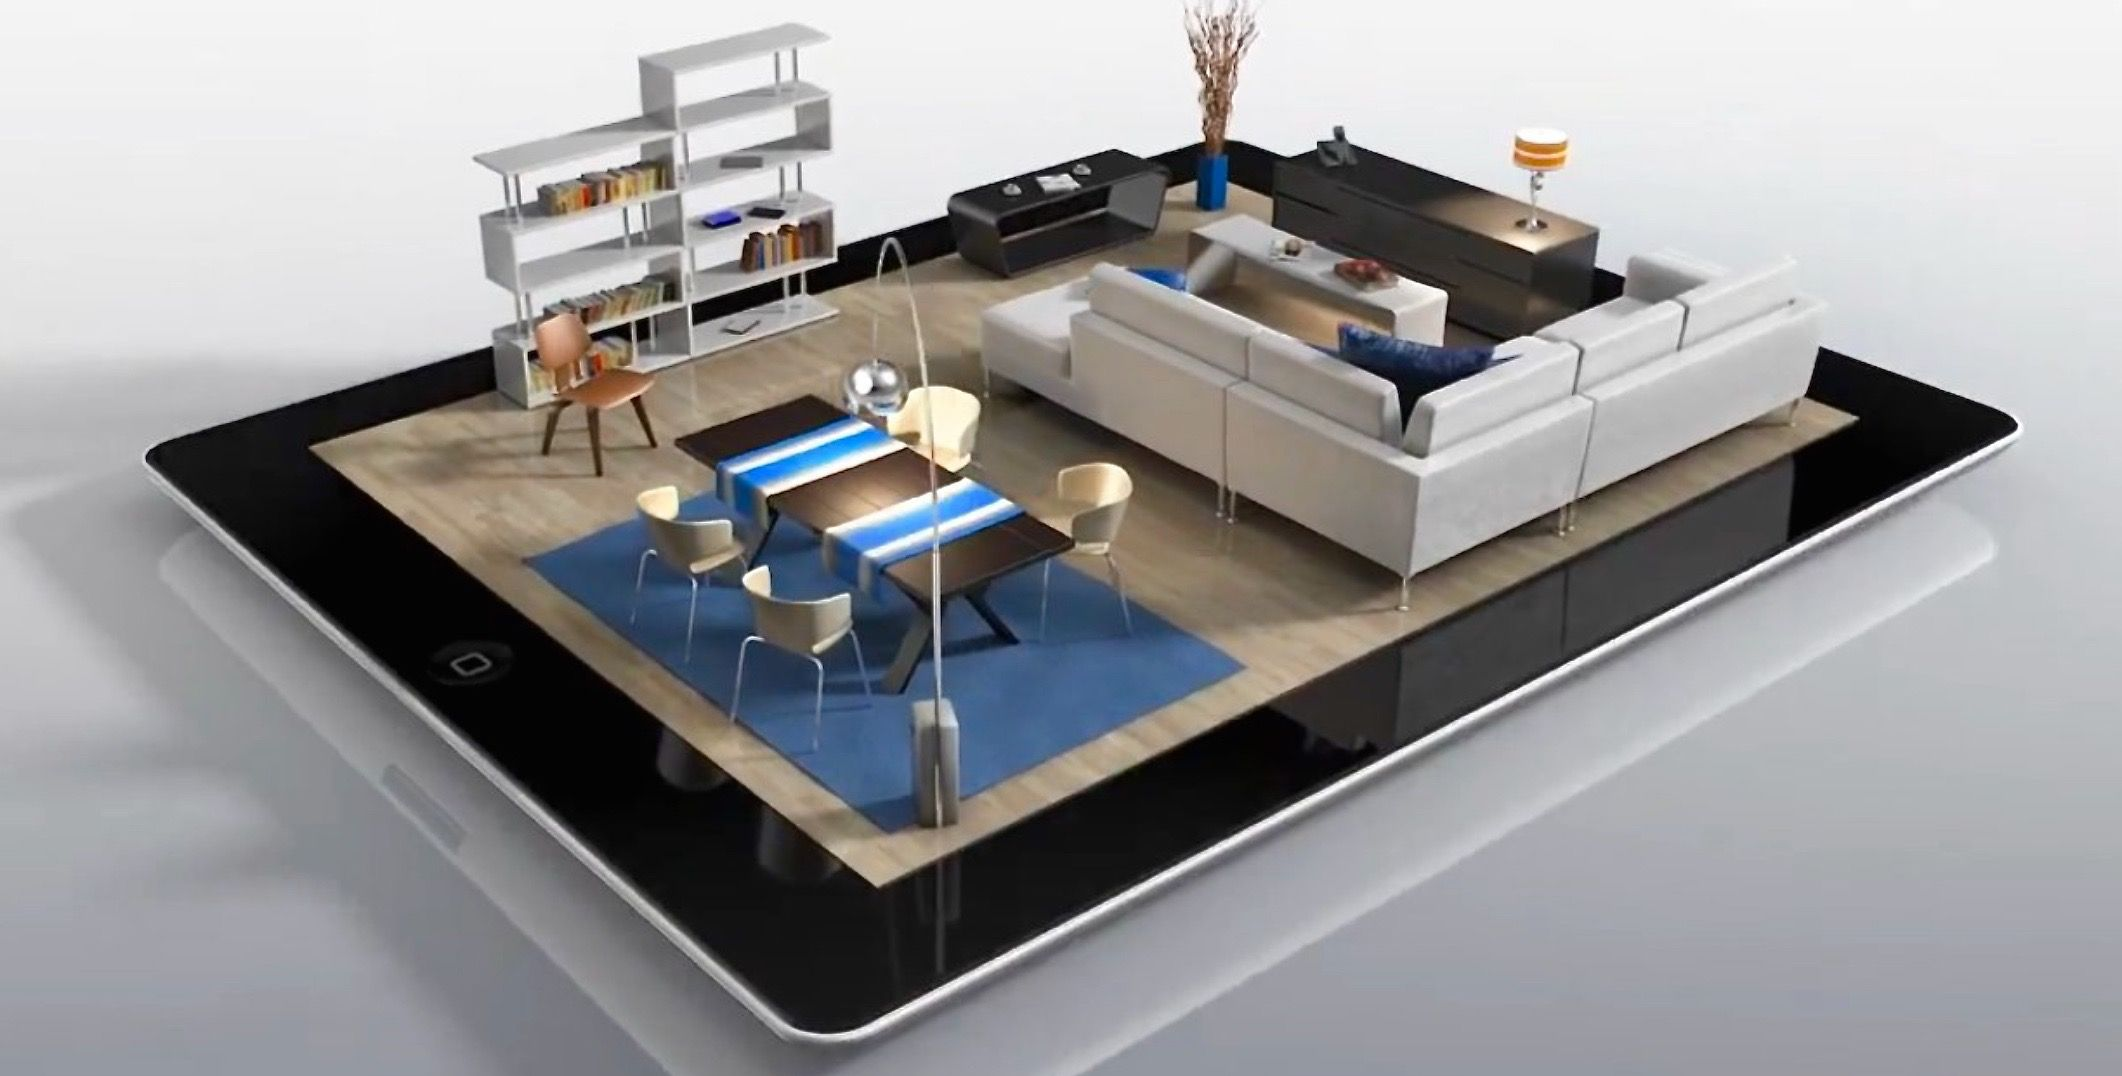 Living Room Design App Brilliant As An Interior Design Centre That Stays On Top Of Trends And Decorating Design